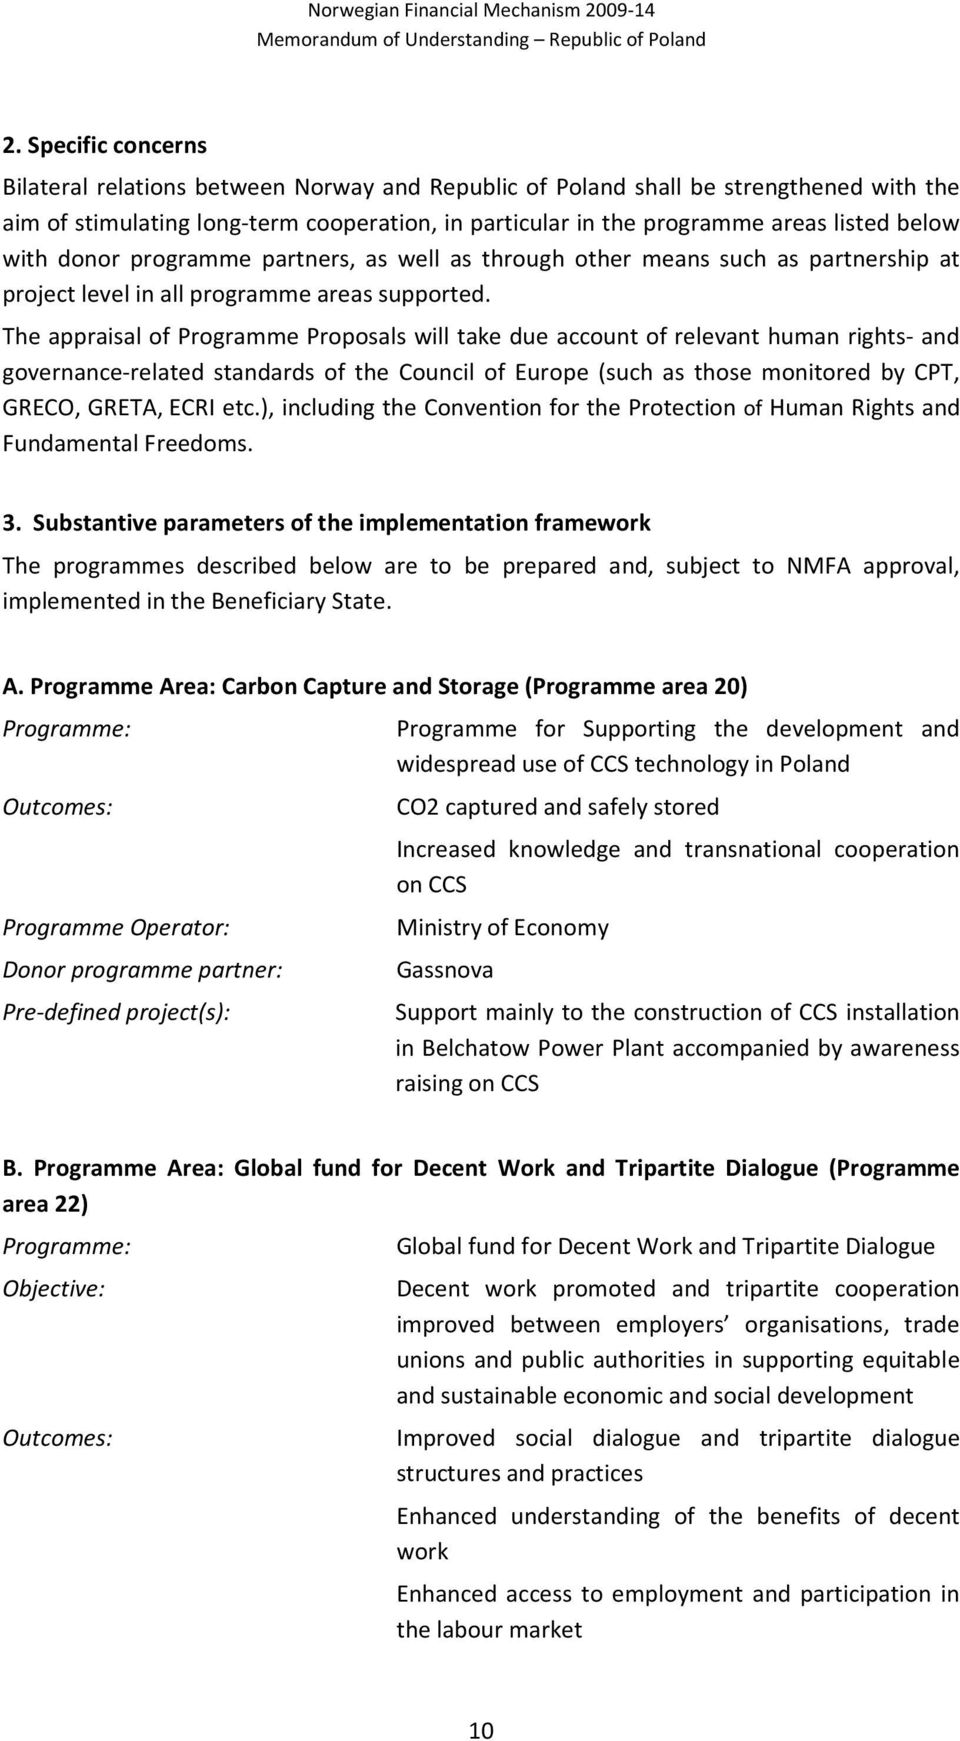 The appraisal of Programme Proposals will take due account of relevant human rights- and governance-related standards of the Council of Europe (such as those monitored by CPT, GRECO, GRETA, ECRI etc.